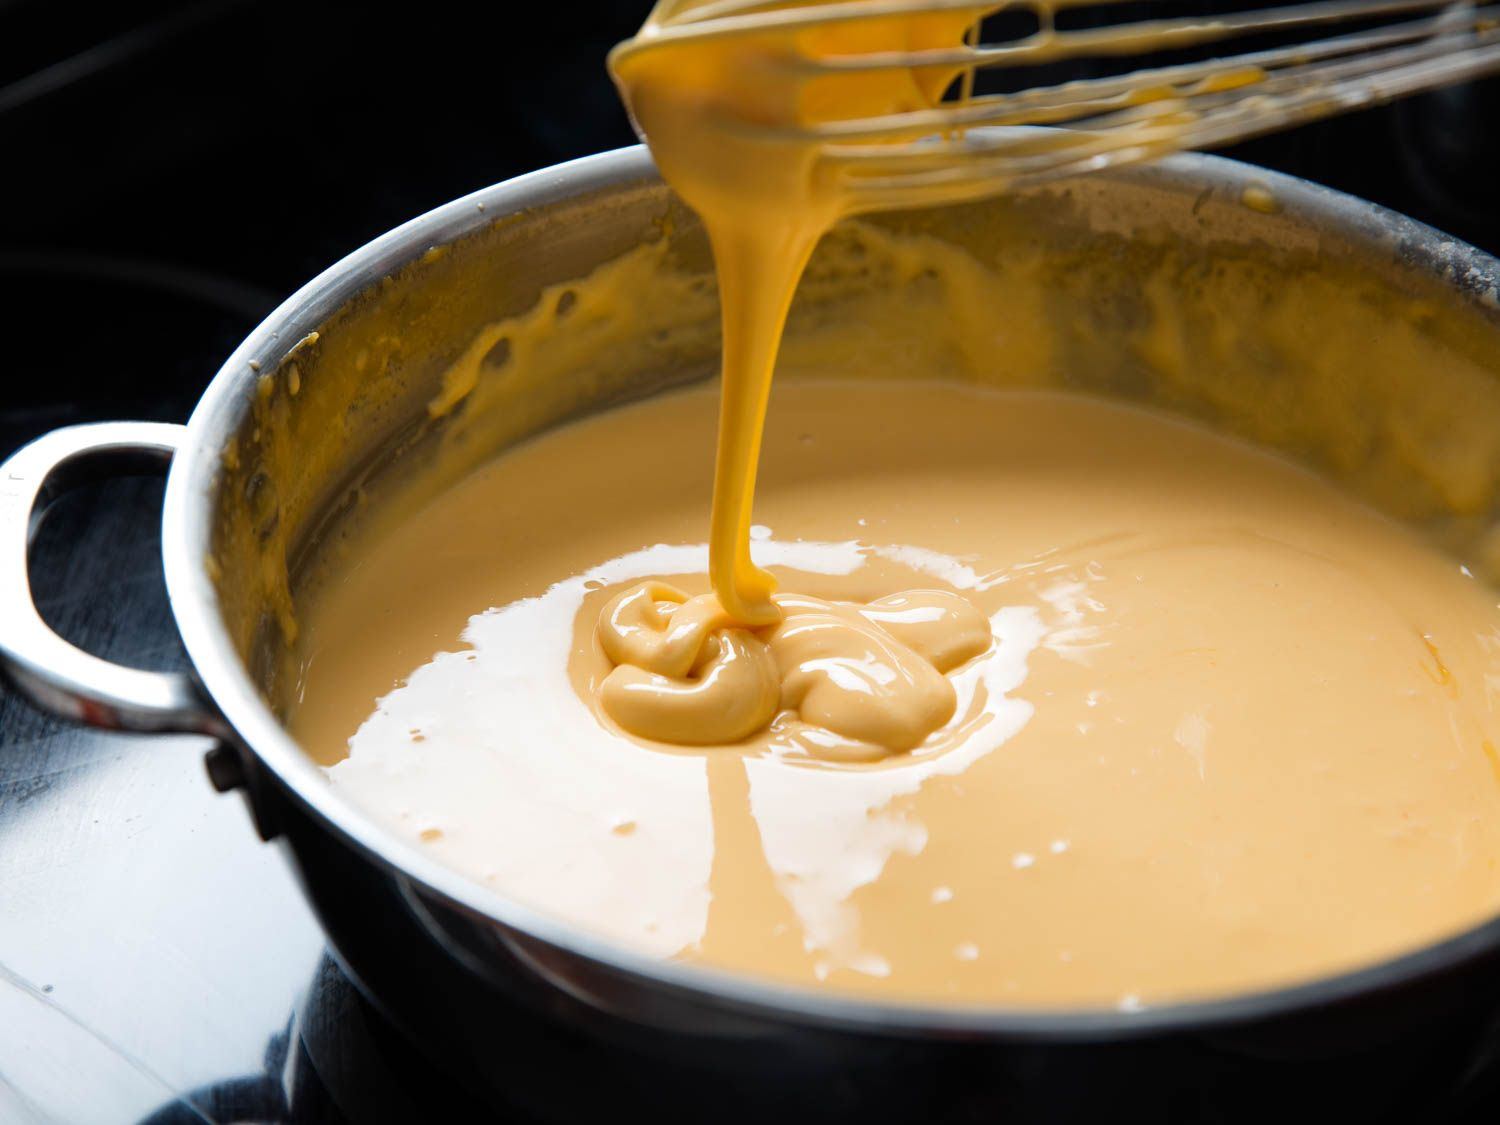 For Smooth Stable Cheese Sauces Cornstarch And Evaporated Milk Are Your Friends Melted Cheese Sauce Cheese Sauce Melted Cheese Dip